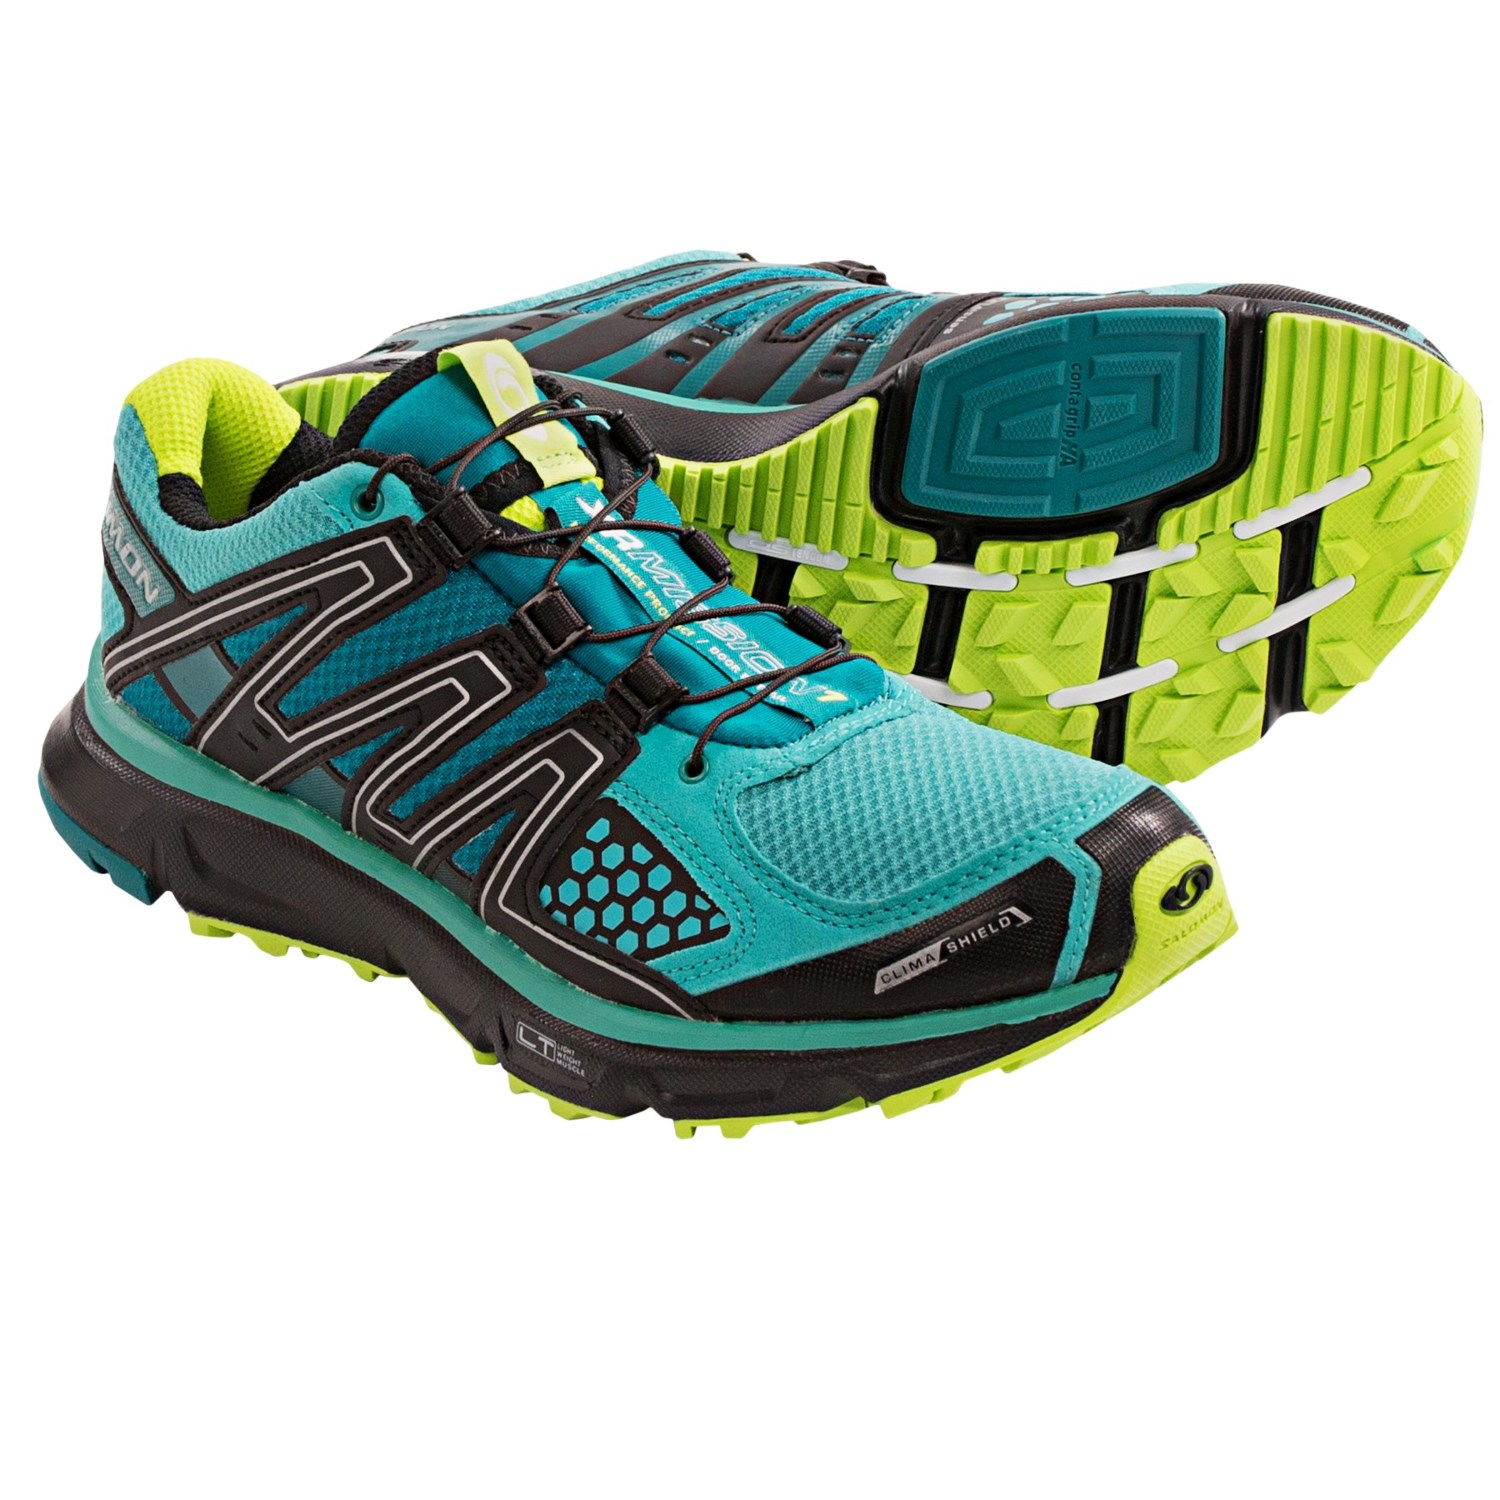 2014 Womens shoes Running Zapatillas Salomon Speedcross 3 CS hiking shoes quick drying and waterproof outdoor